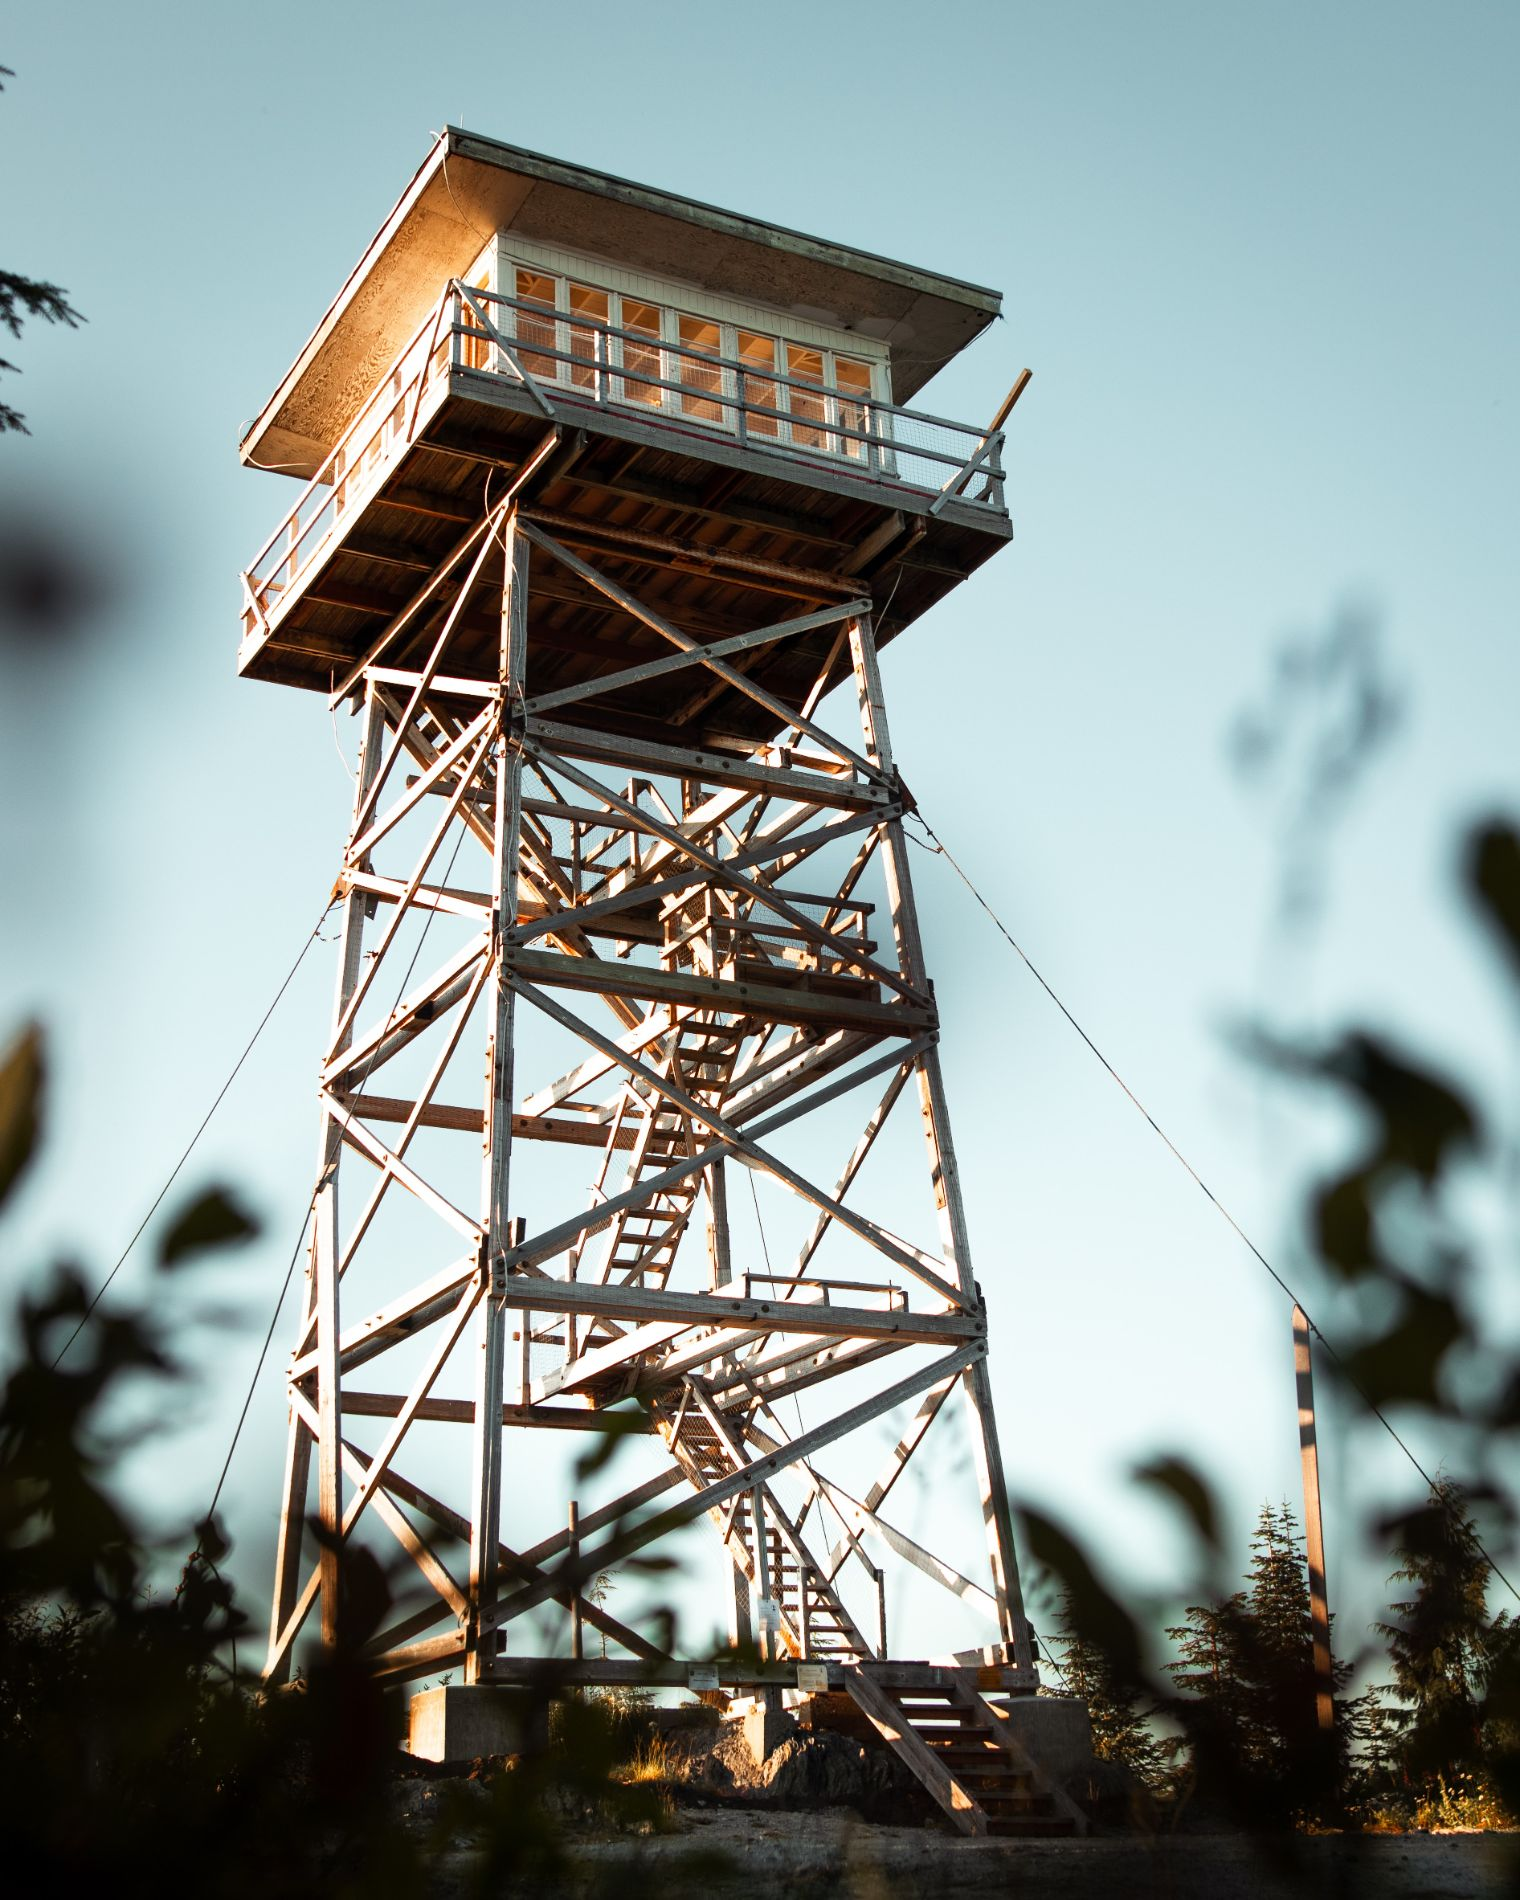 fire lookout tower in a forest